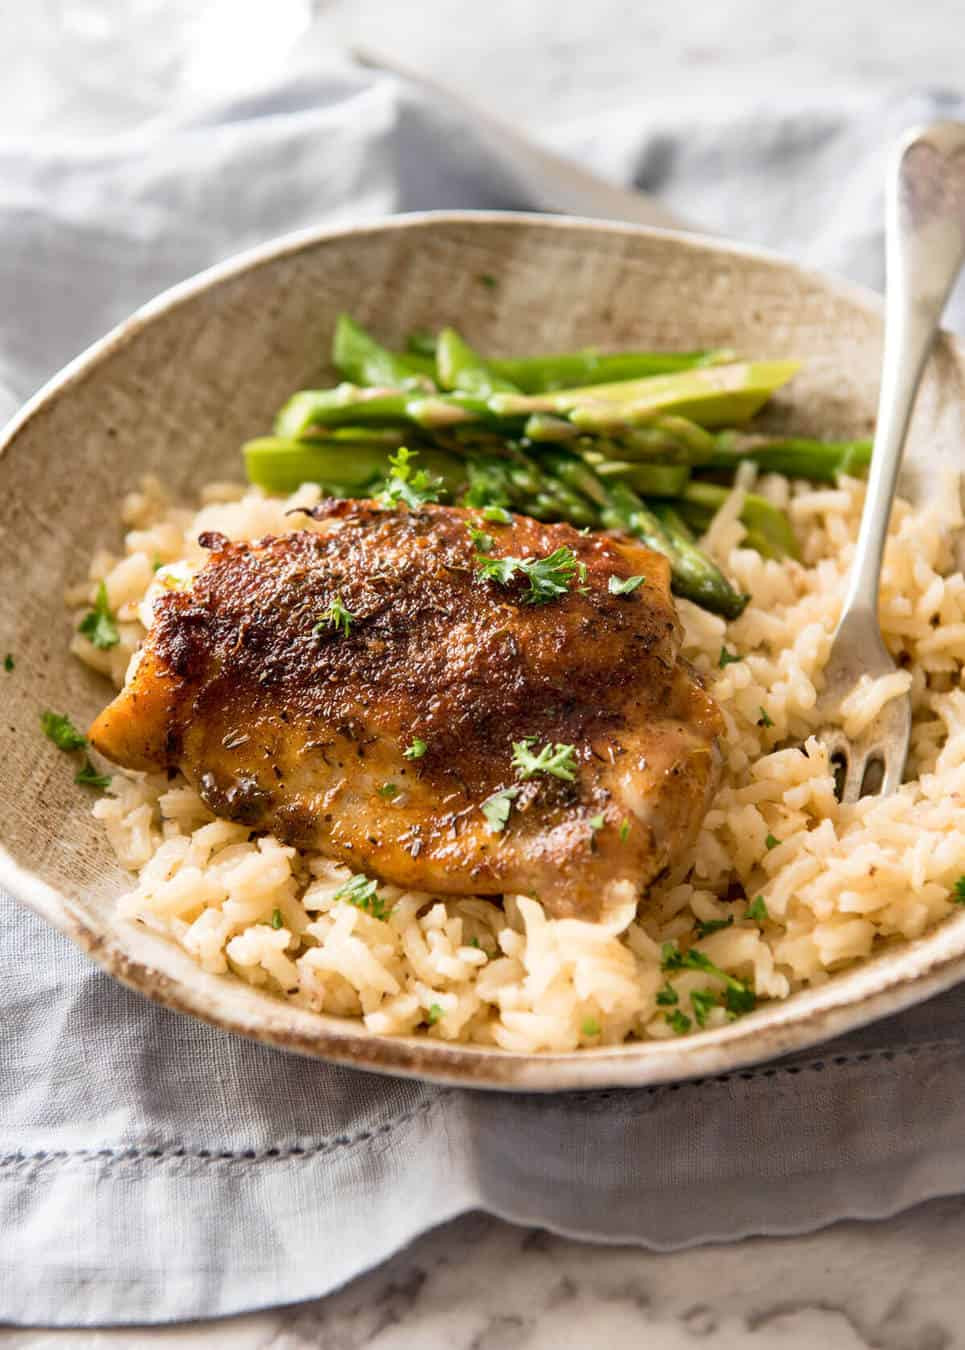 Baked Chicken And Rice Recipe  Oven Baked Chicken and Rice No Stove